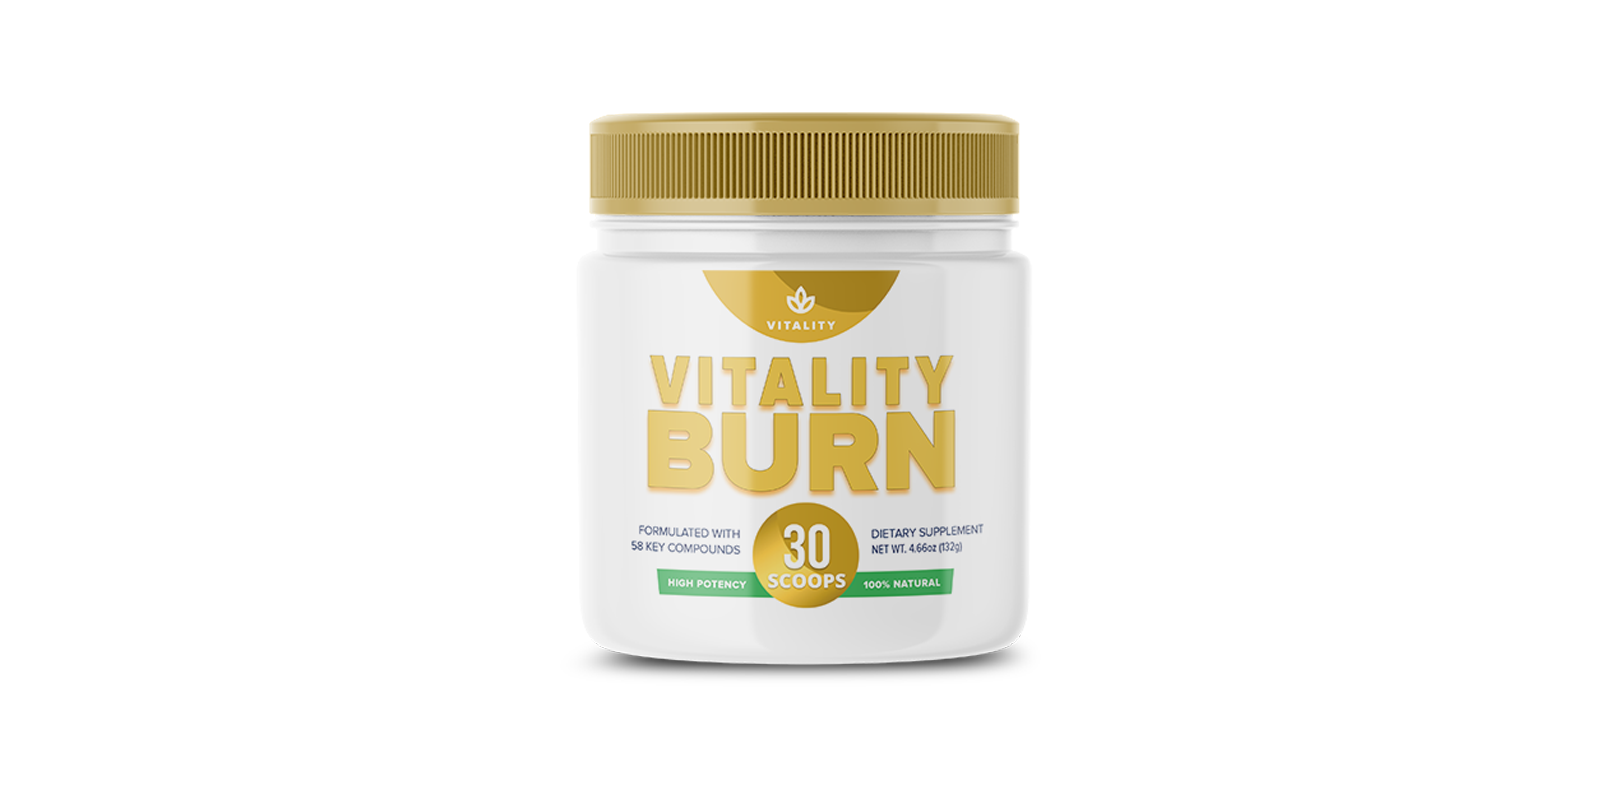 Vitality-burn-review